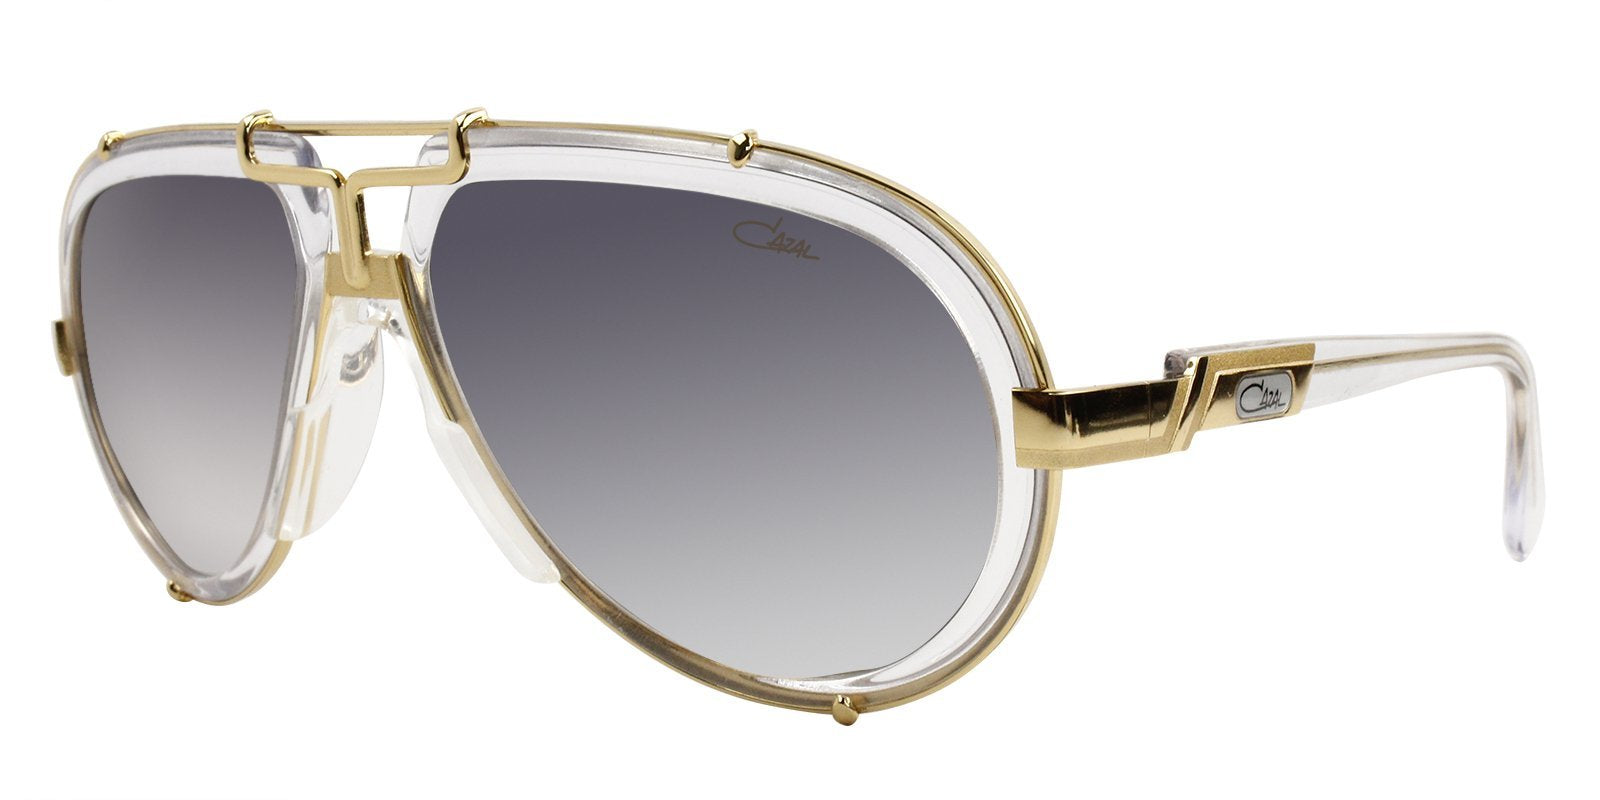 5367922a9fbb ... Cazal - CZ 642 Gold - Gray-Sunglasses-Designer Eyes